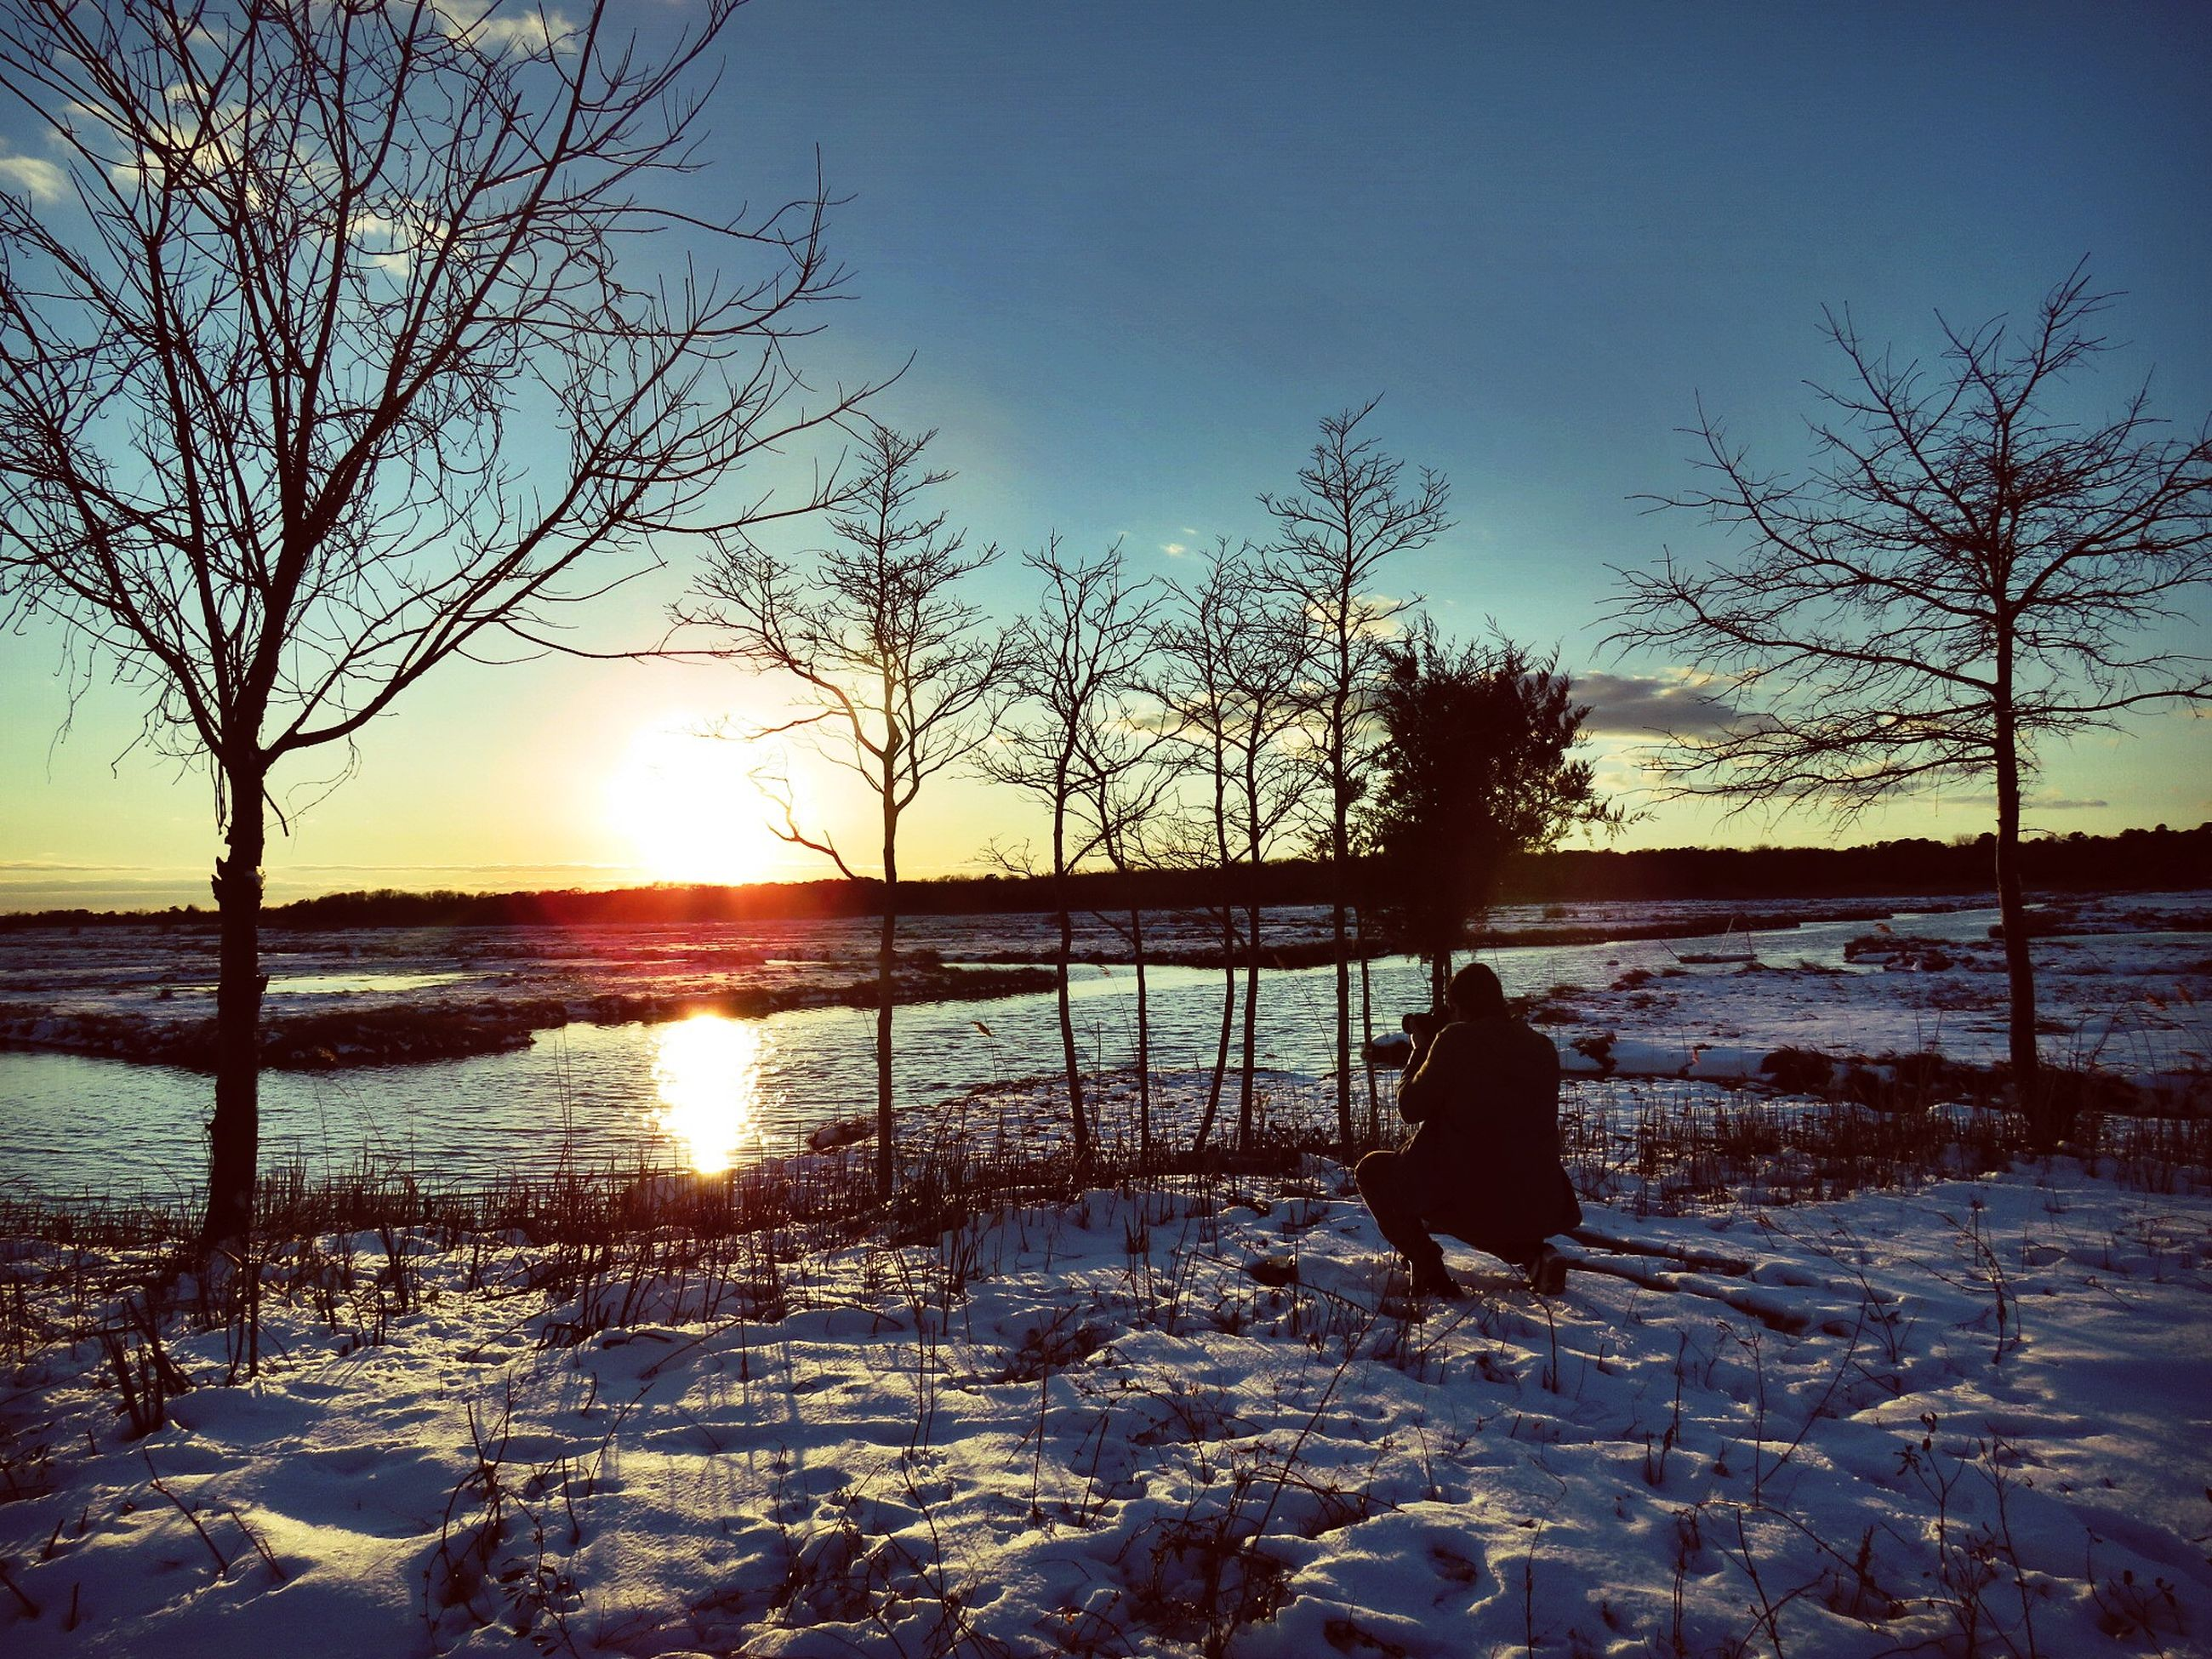 sunset, silhouette, sun, bare tree, water, tranquil scene, scenics, tranquility, beauty in nature, winter, cold temperature, snow, nature, lake, reflection, clear sky, sky, tree, idyllic, branch